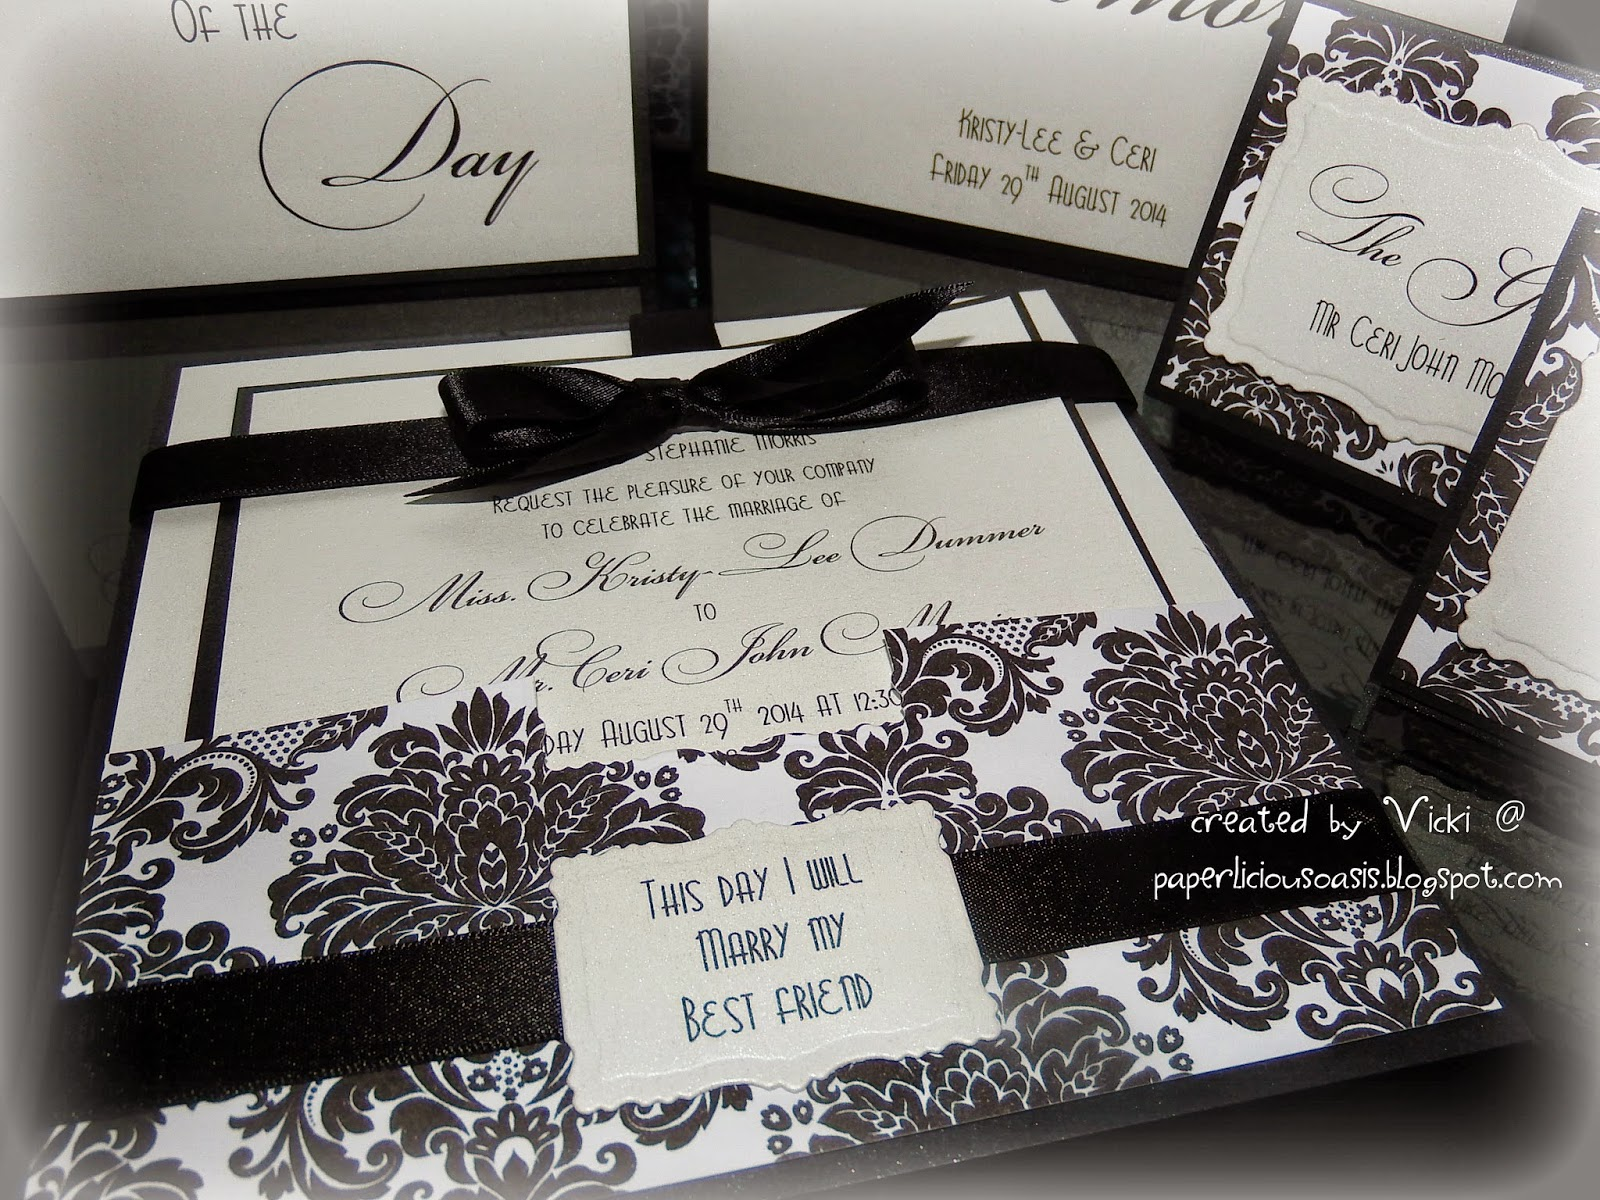 Paperlicious Oasis: Black and White Damask Wedding Invitations ...